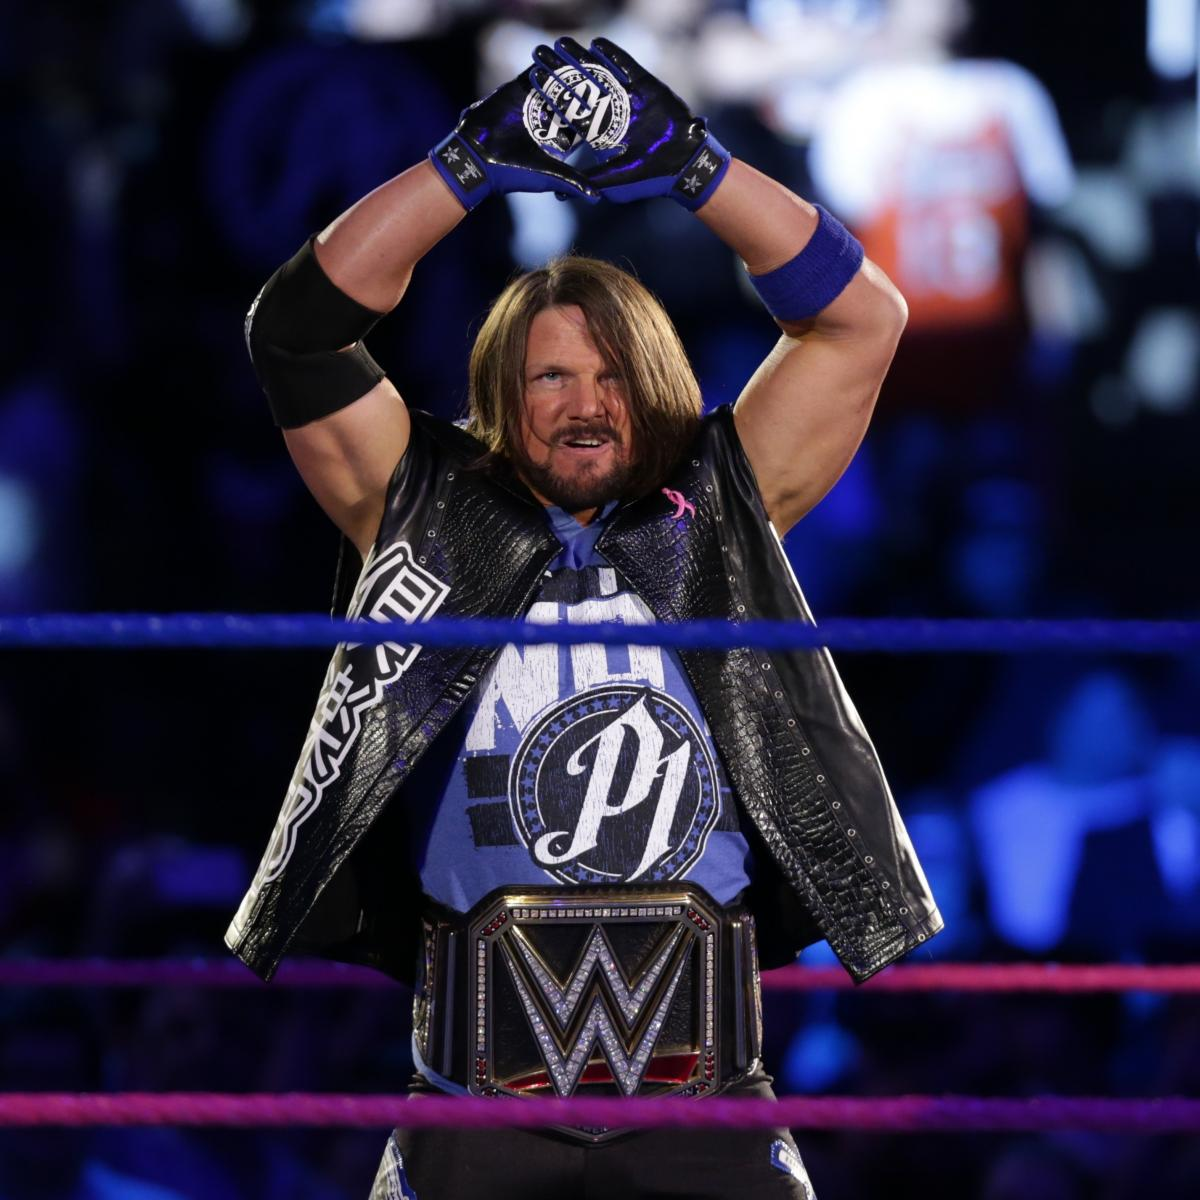 AJ Styles Must Regain WWE Championship At WWE Elimination